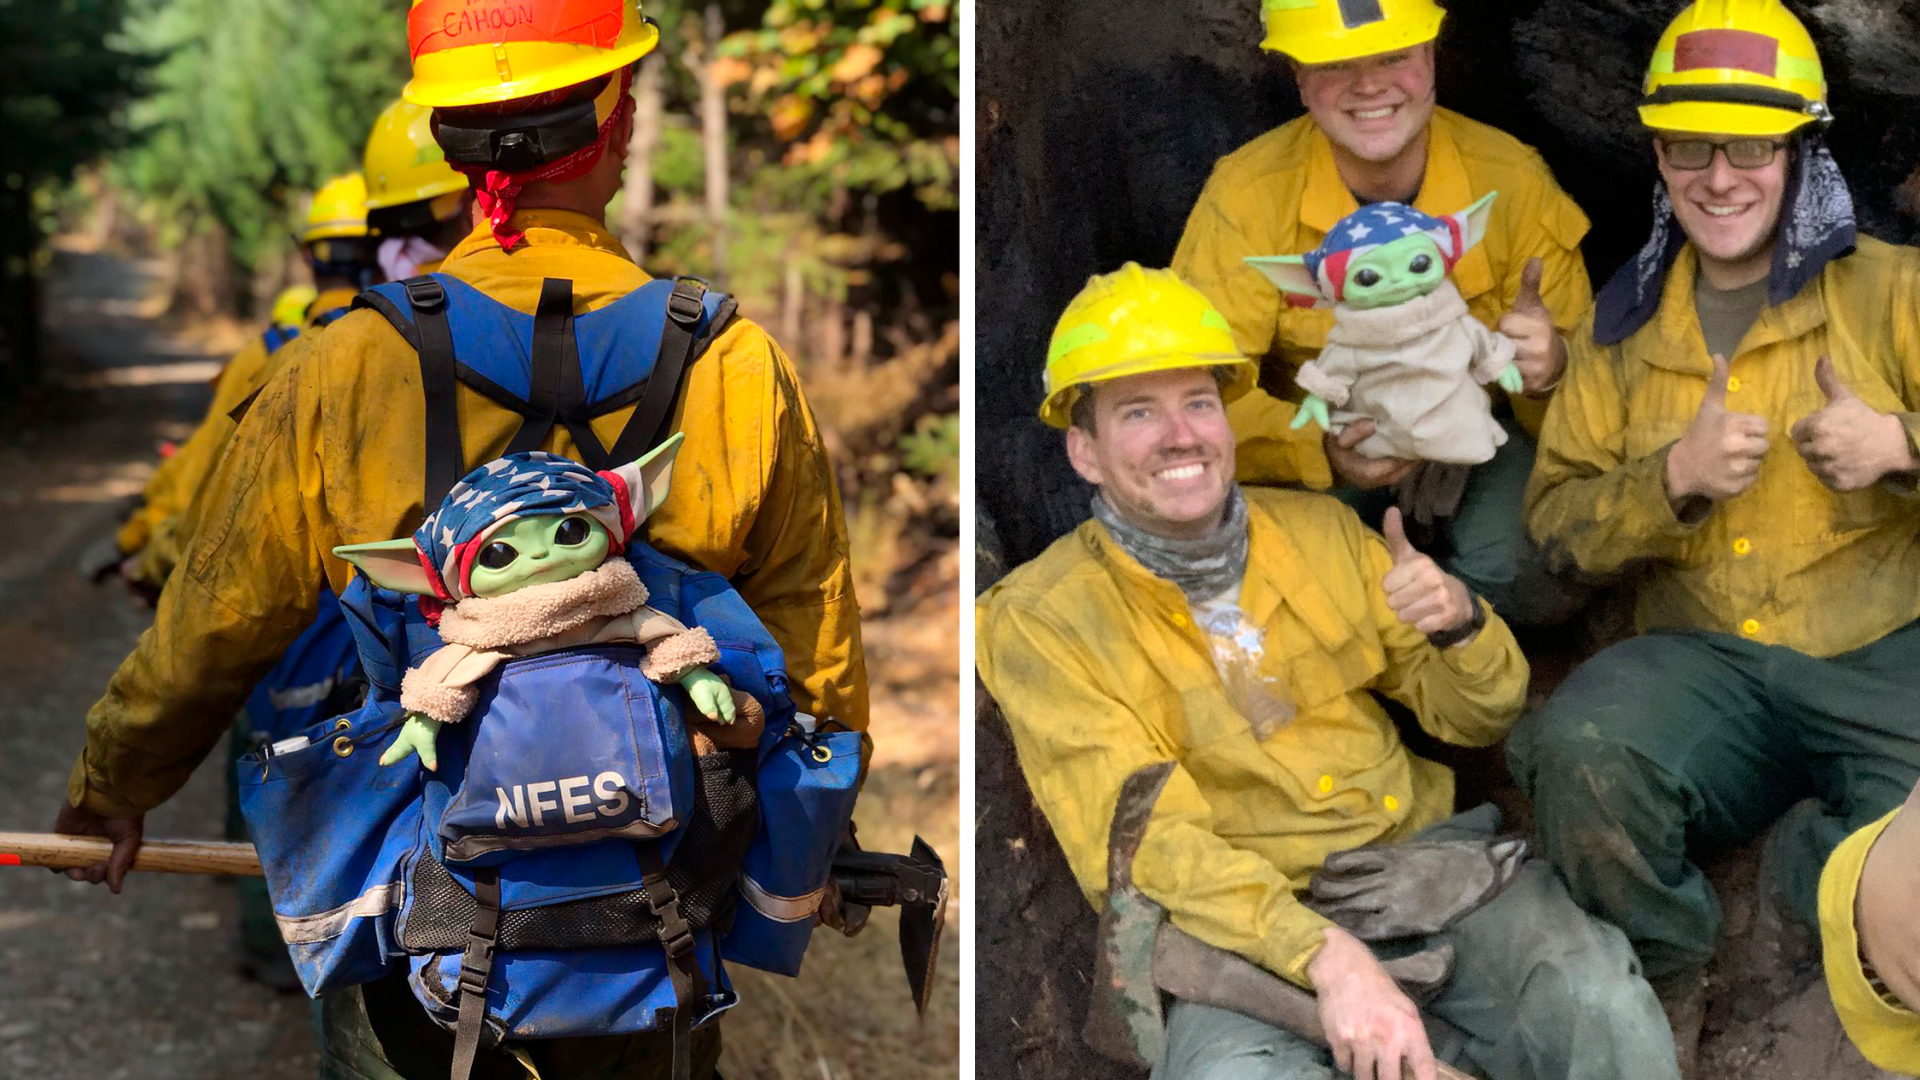 "A Baby Yoda doll, from the sci-fi series ""The Mandalorian,"" hitches a ride in the backpack of an Oregon Air National Guard firefighter on Sunday, Sept. 20, 2020 while fighting the Holiday Farm Fire in Blue River, Oregon. (Courtesy of Jaebyn Drake via AP) On the right,Lucas Galloway, from left, Jaebyn Drake, Rhett Schieder and Audrey Wilcox pose for a selfie with Baby Yoda on Sept. 20, 2020, while fighting the Holiday Farm Fire in Blue River, Oregon. (Courtesy of Audrey Wilcox via AP)"